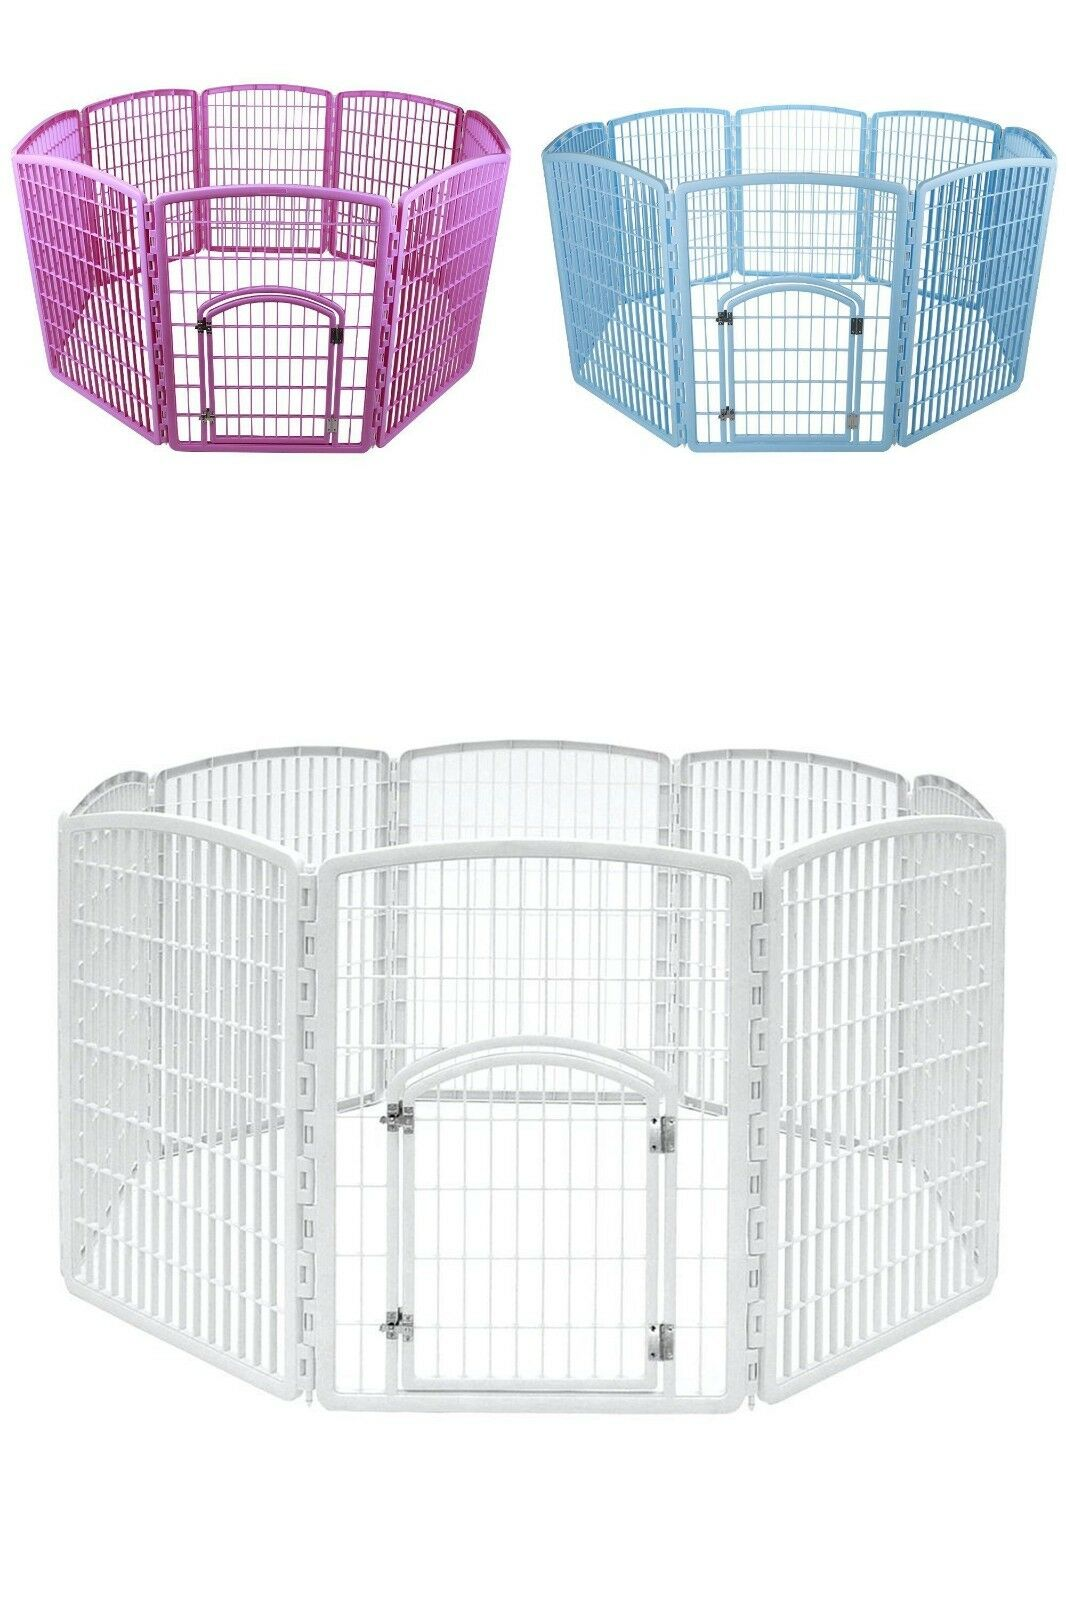 NEW Puppy Dog Pet Play Pen Kennel Cage Gate Fence Plastic 63 x63 x34  NO TAX